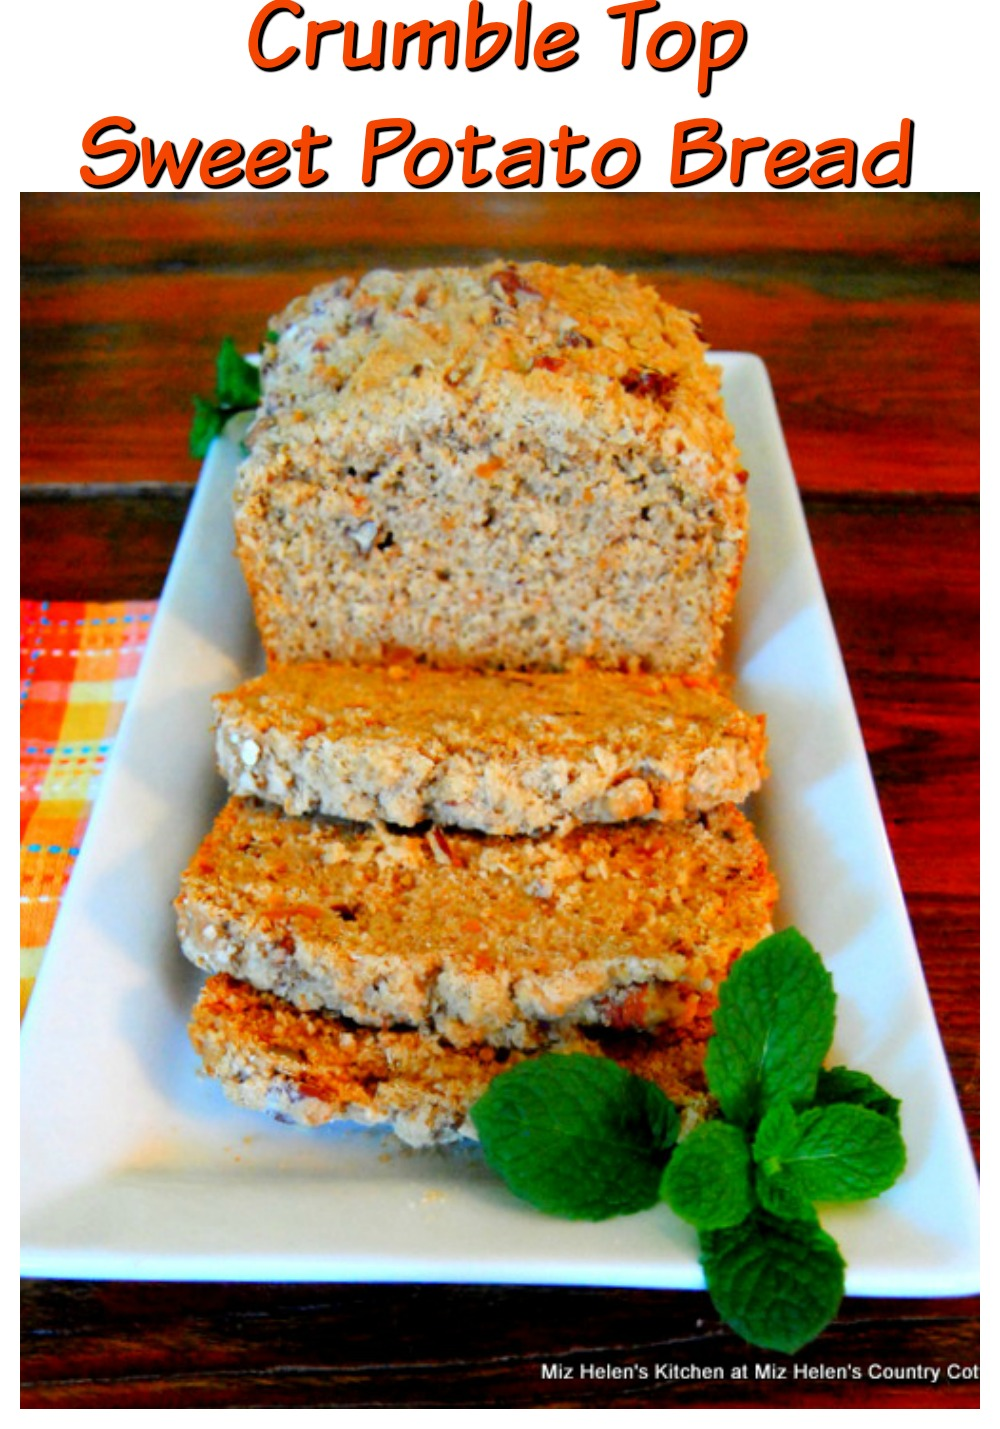 Crumble Top Sweet Potato Bread